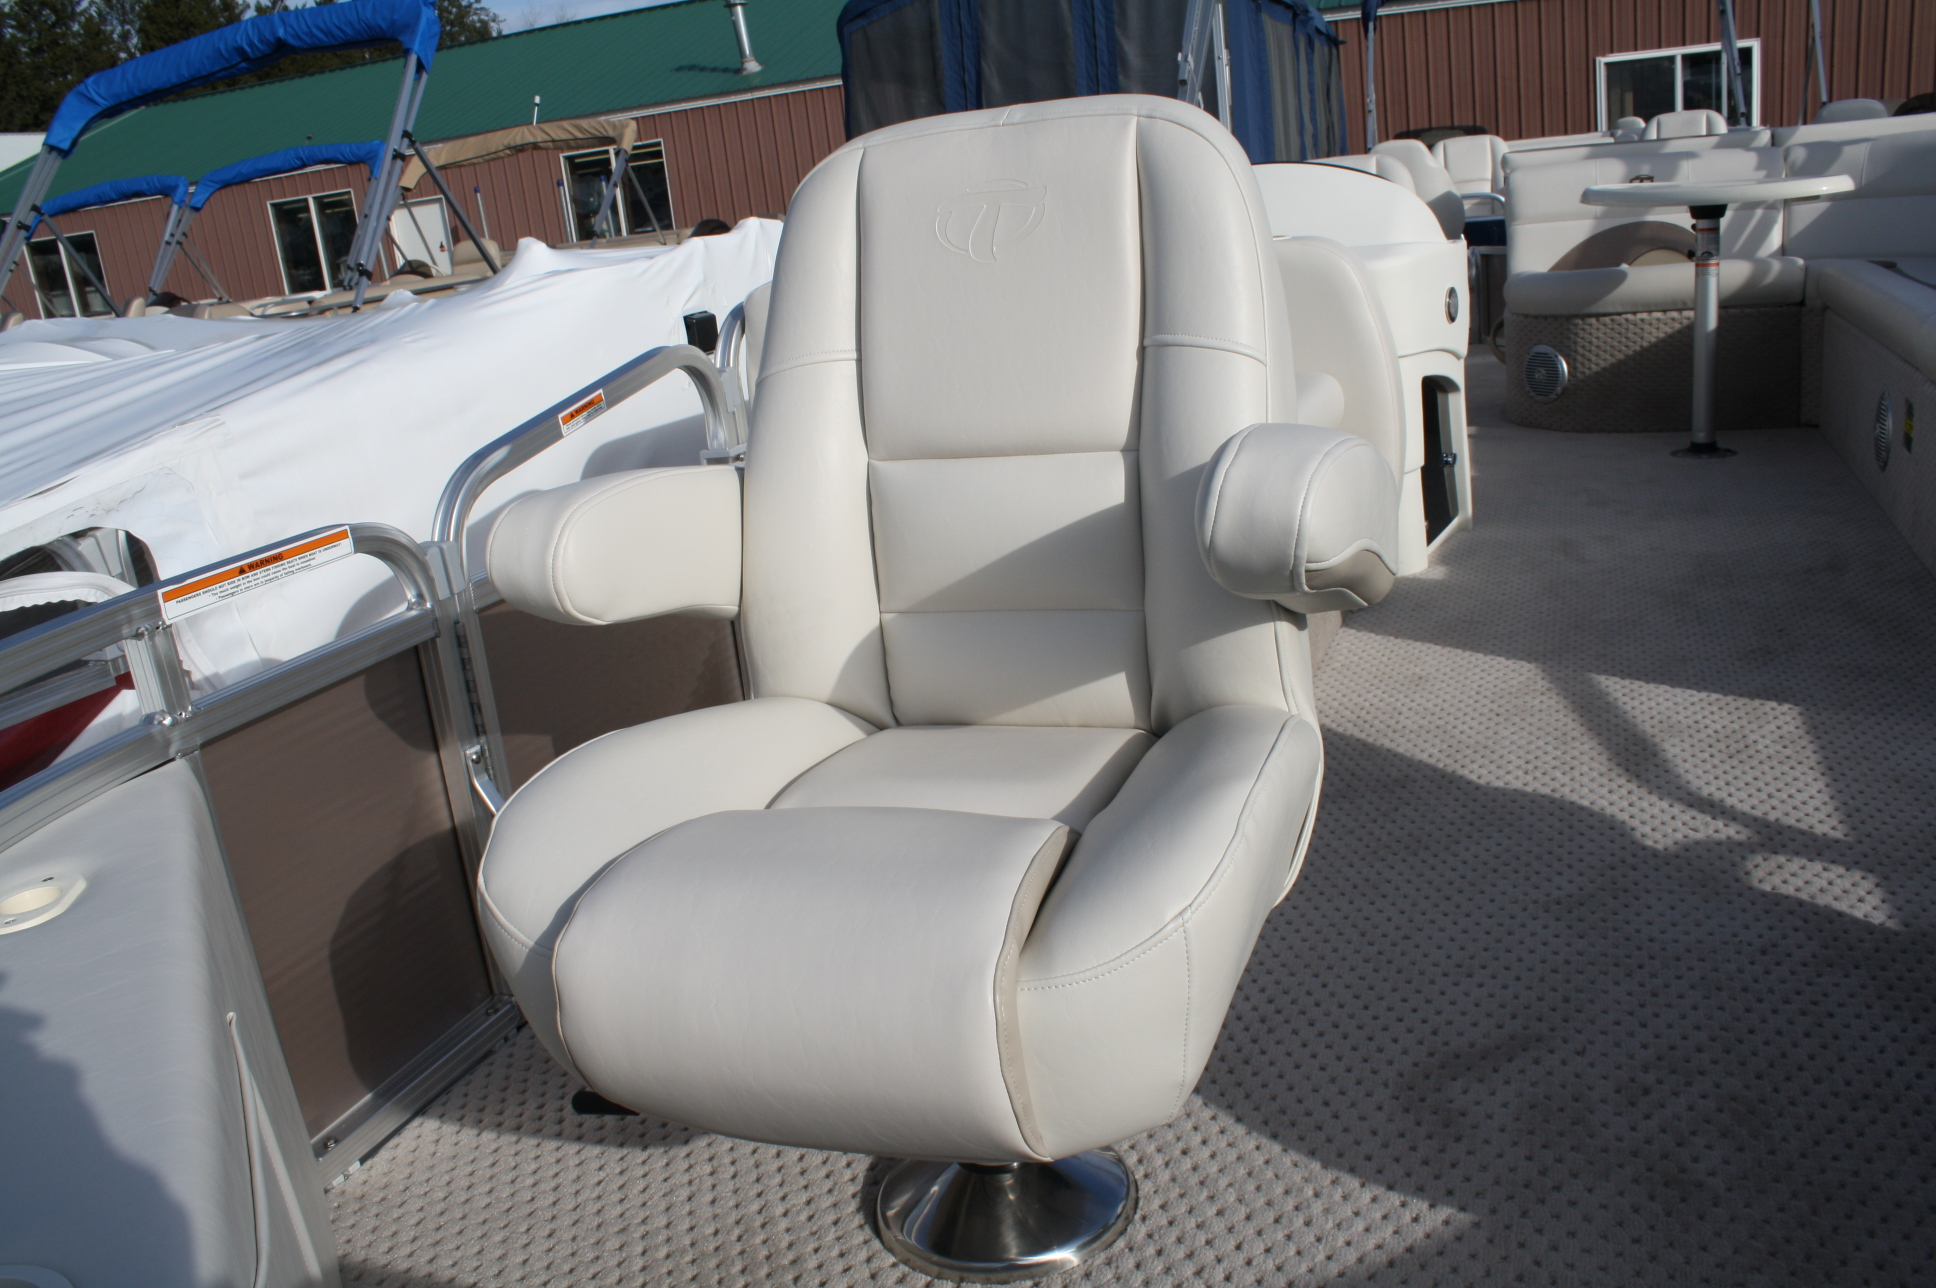 Pontoon Boat Seats For Sale >> Boat Seats Boat Seats Used Sale